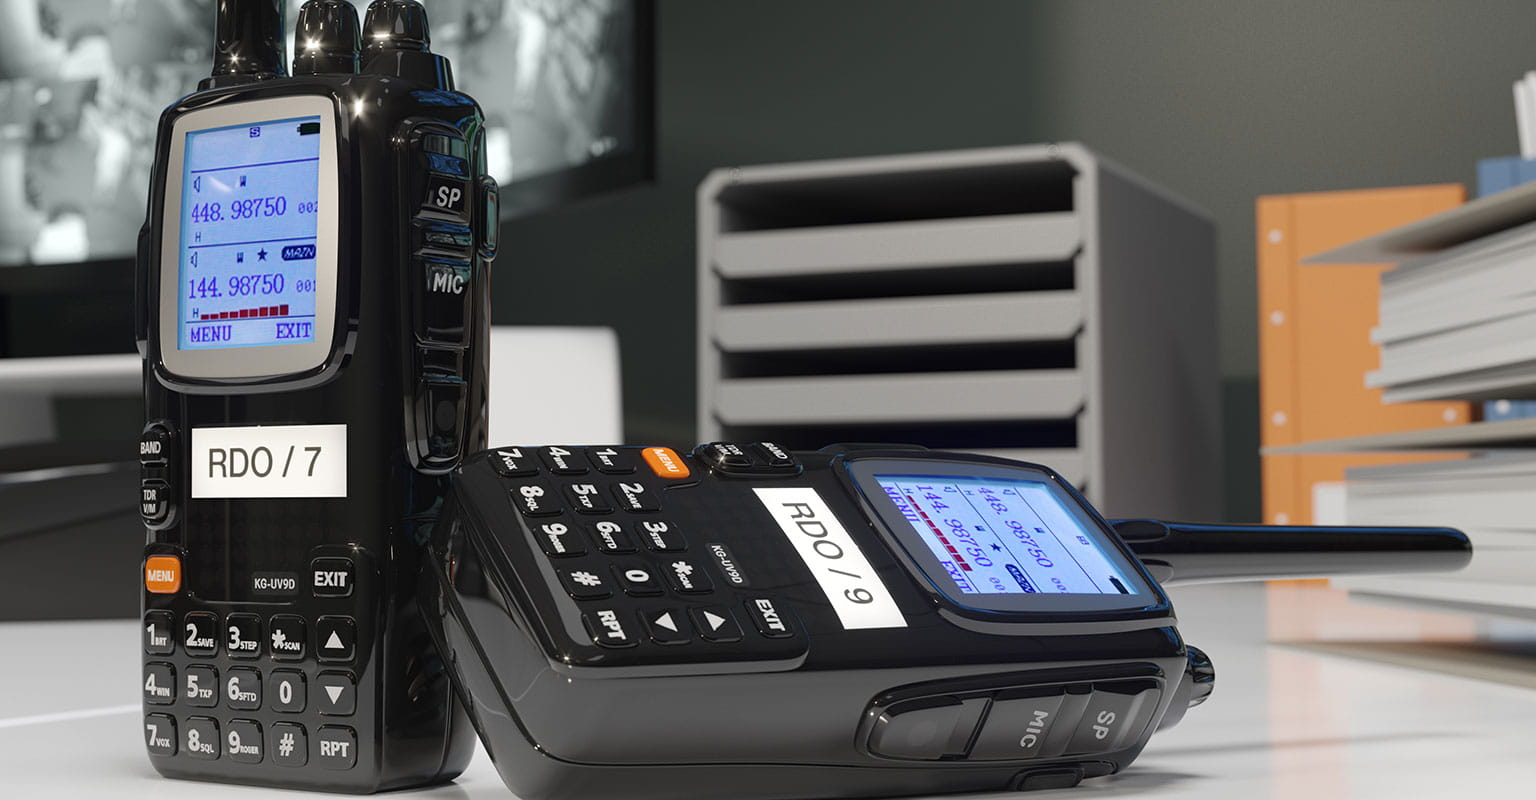 Two radio walkie-talkies with identification labels produced on a Brother P-touch label printer